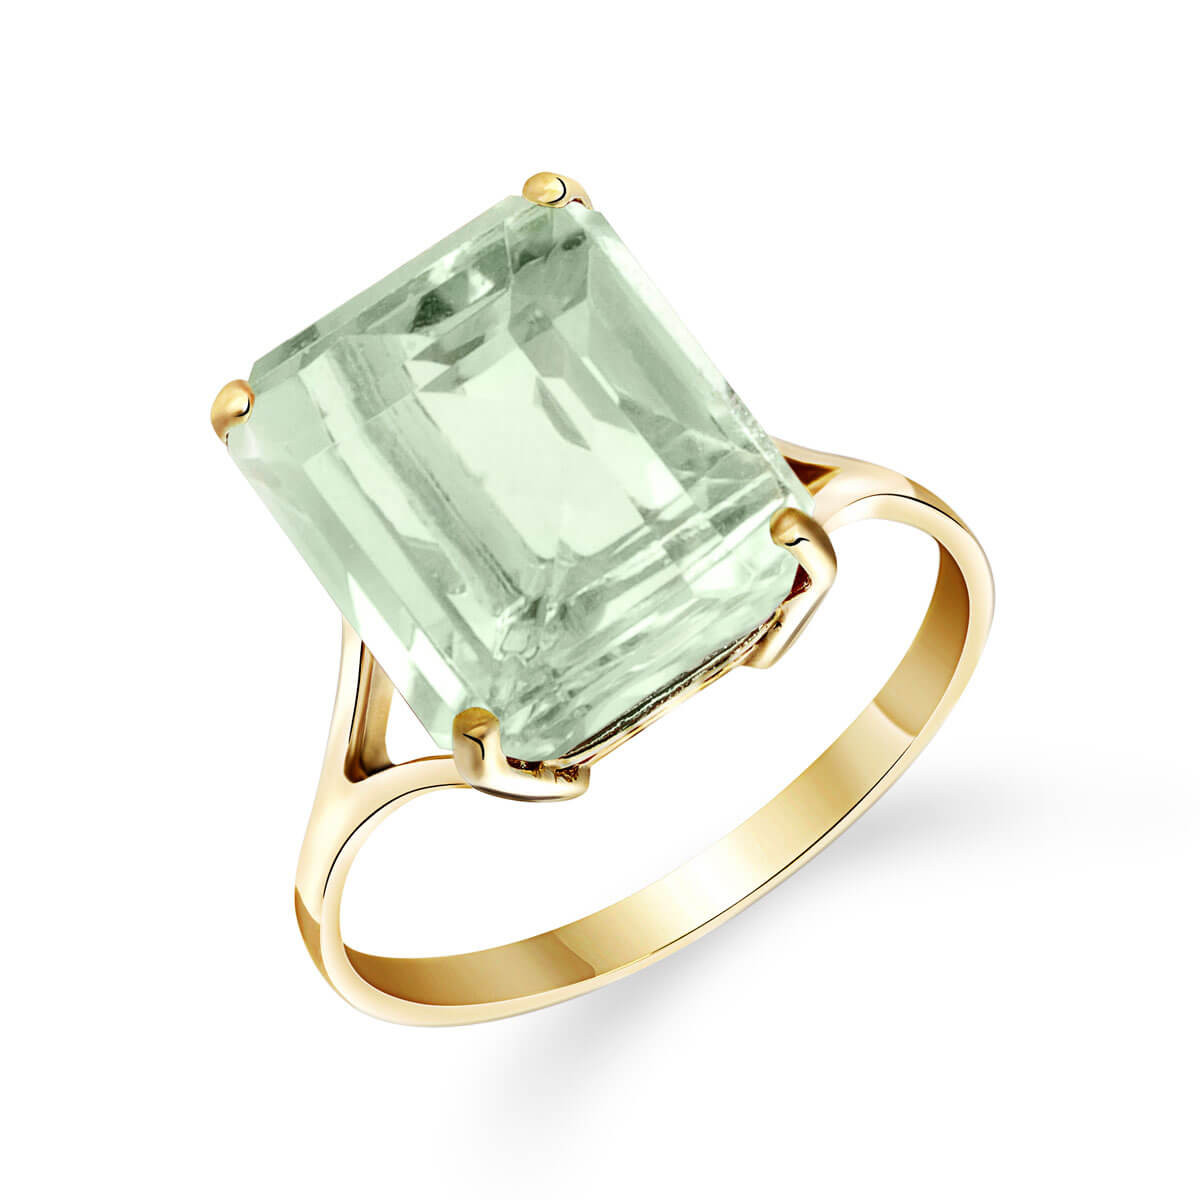 Green Amethyst Auroral Ring 6.5 ct in 9ct Gold